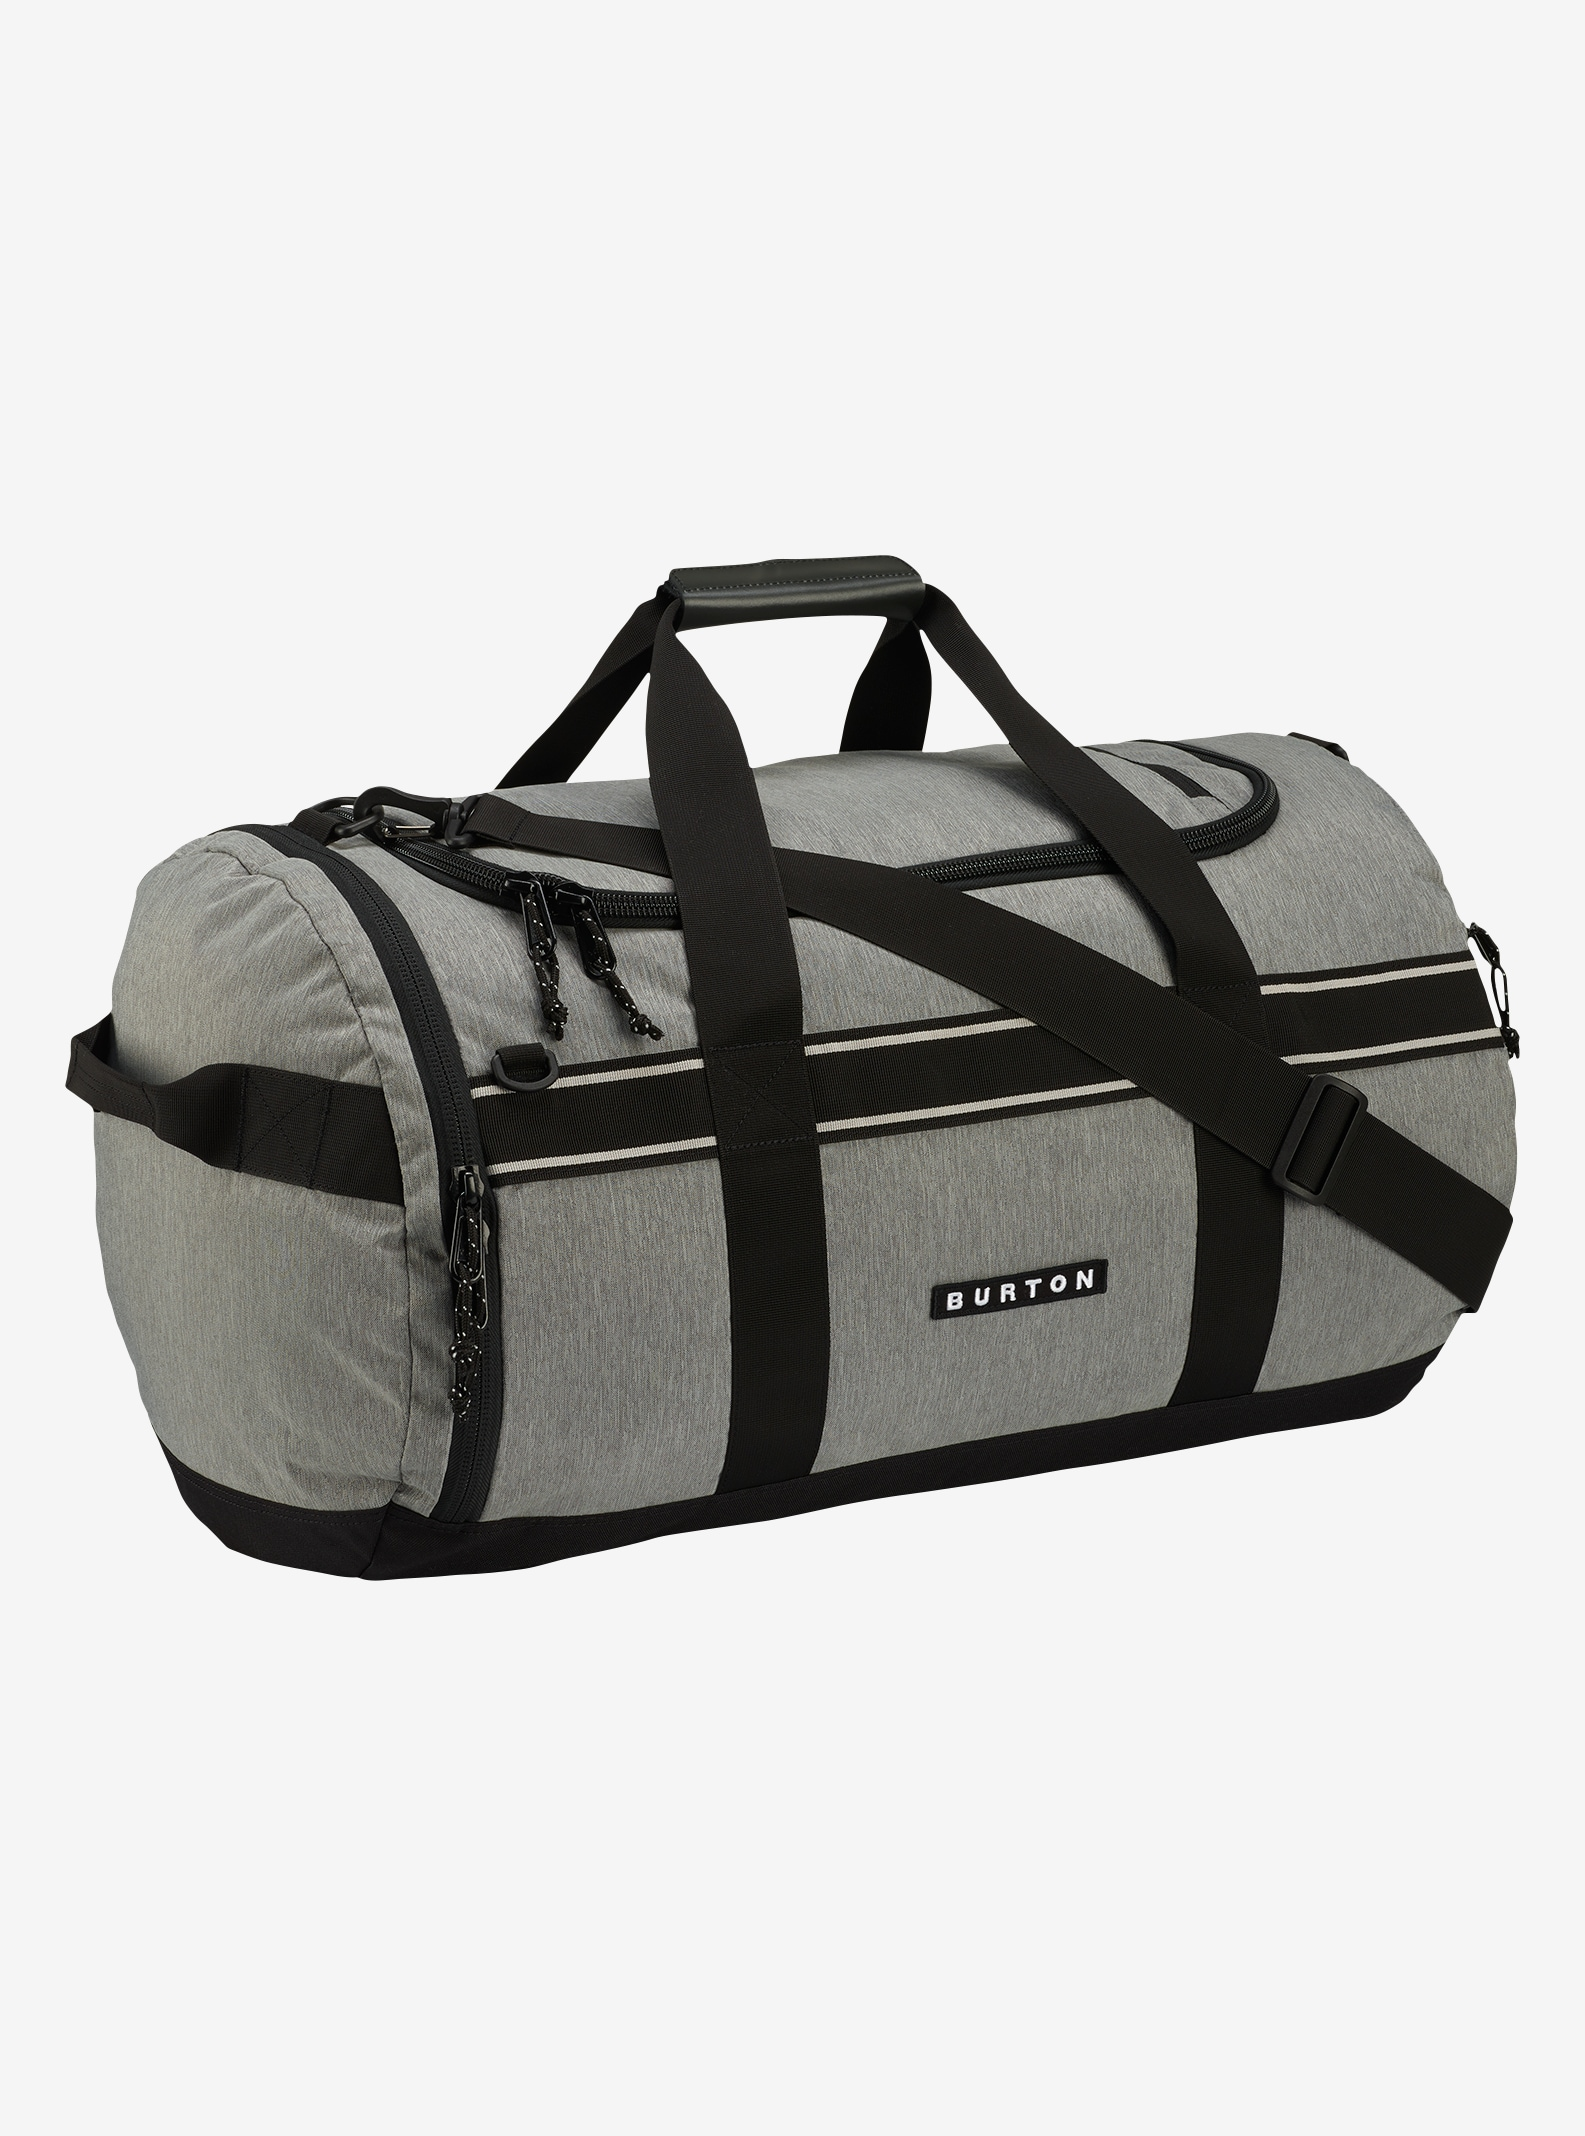 Burton Backhill Duffel Bag Medium 70L shown in Grey Heather